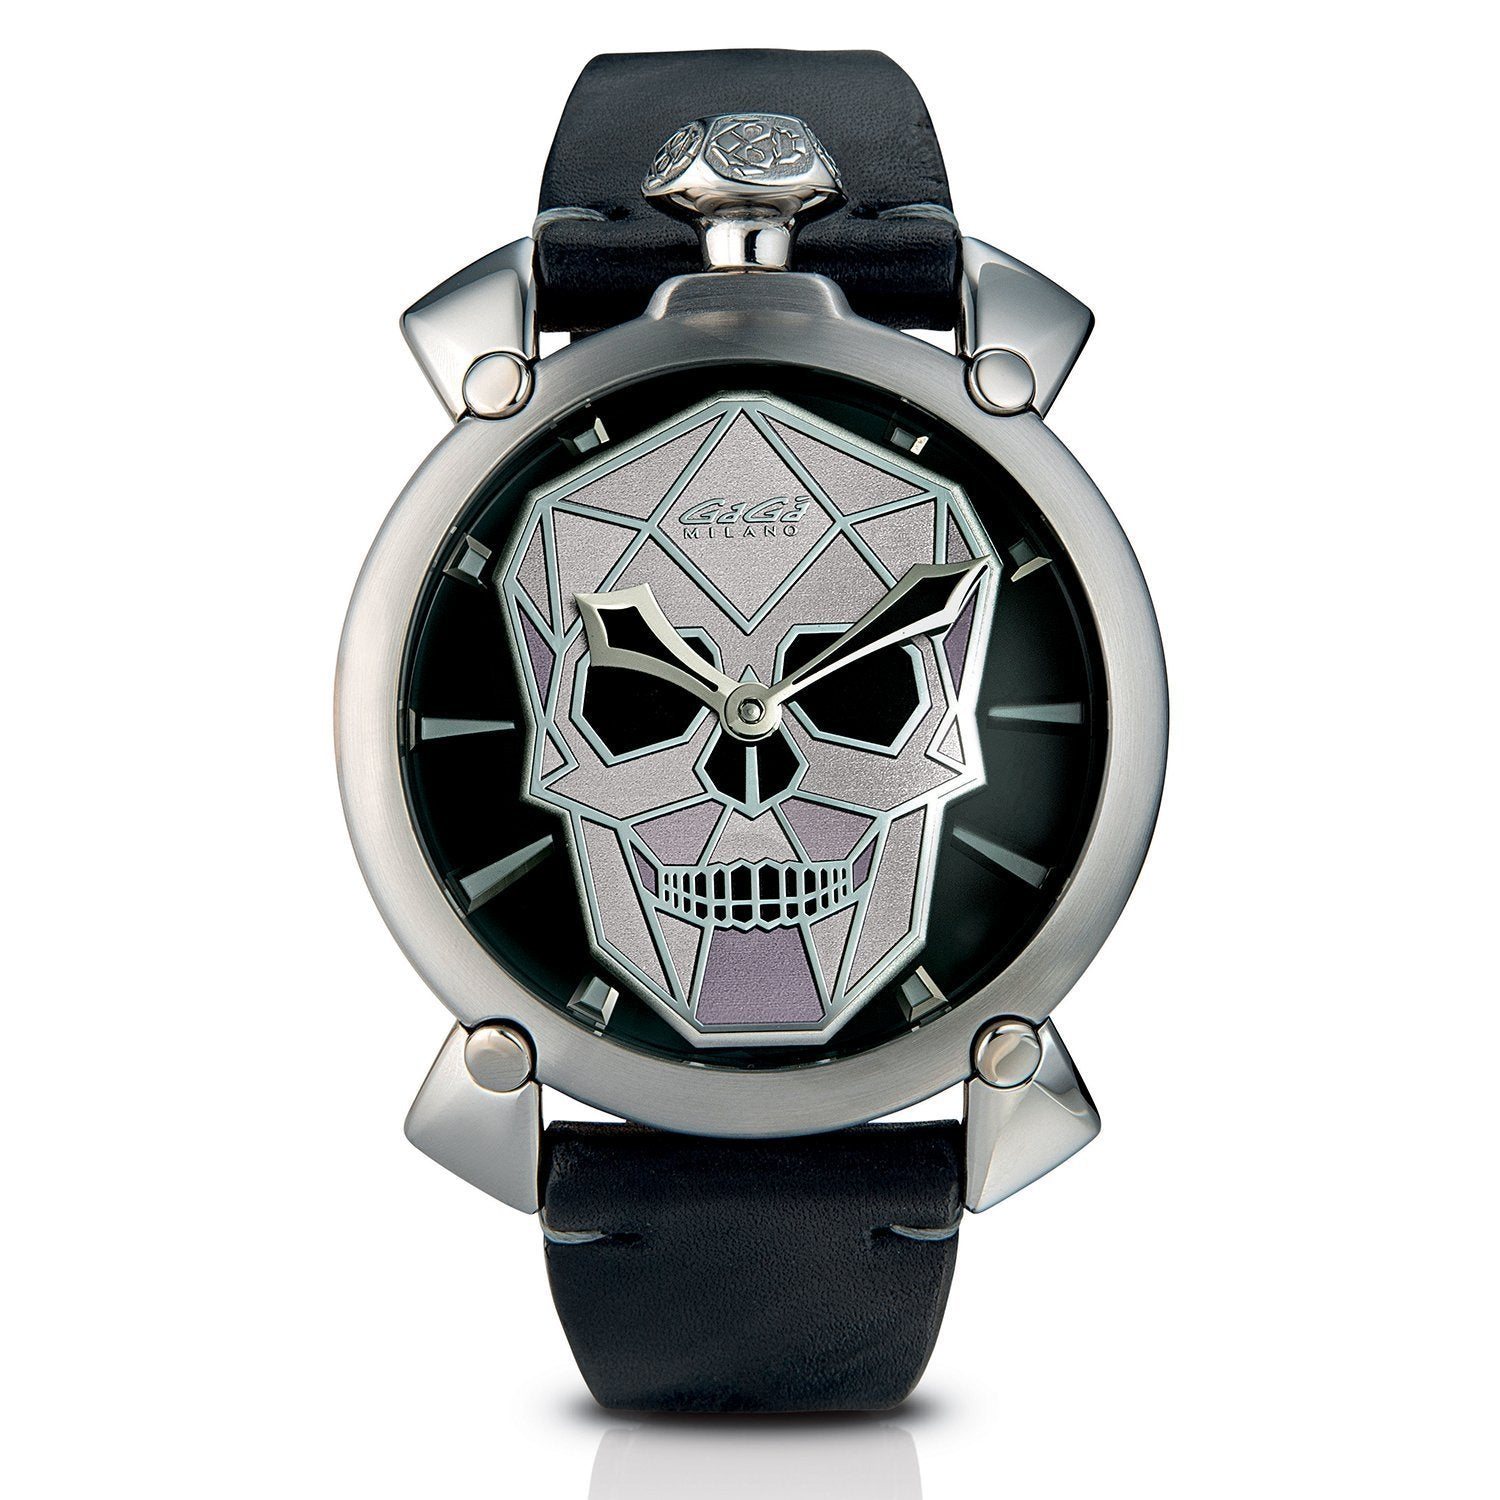 GaGà Milano Manuale 48 Bionic Skull Limited Edition - Watches & Crystals